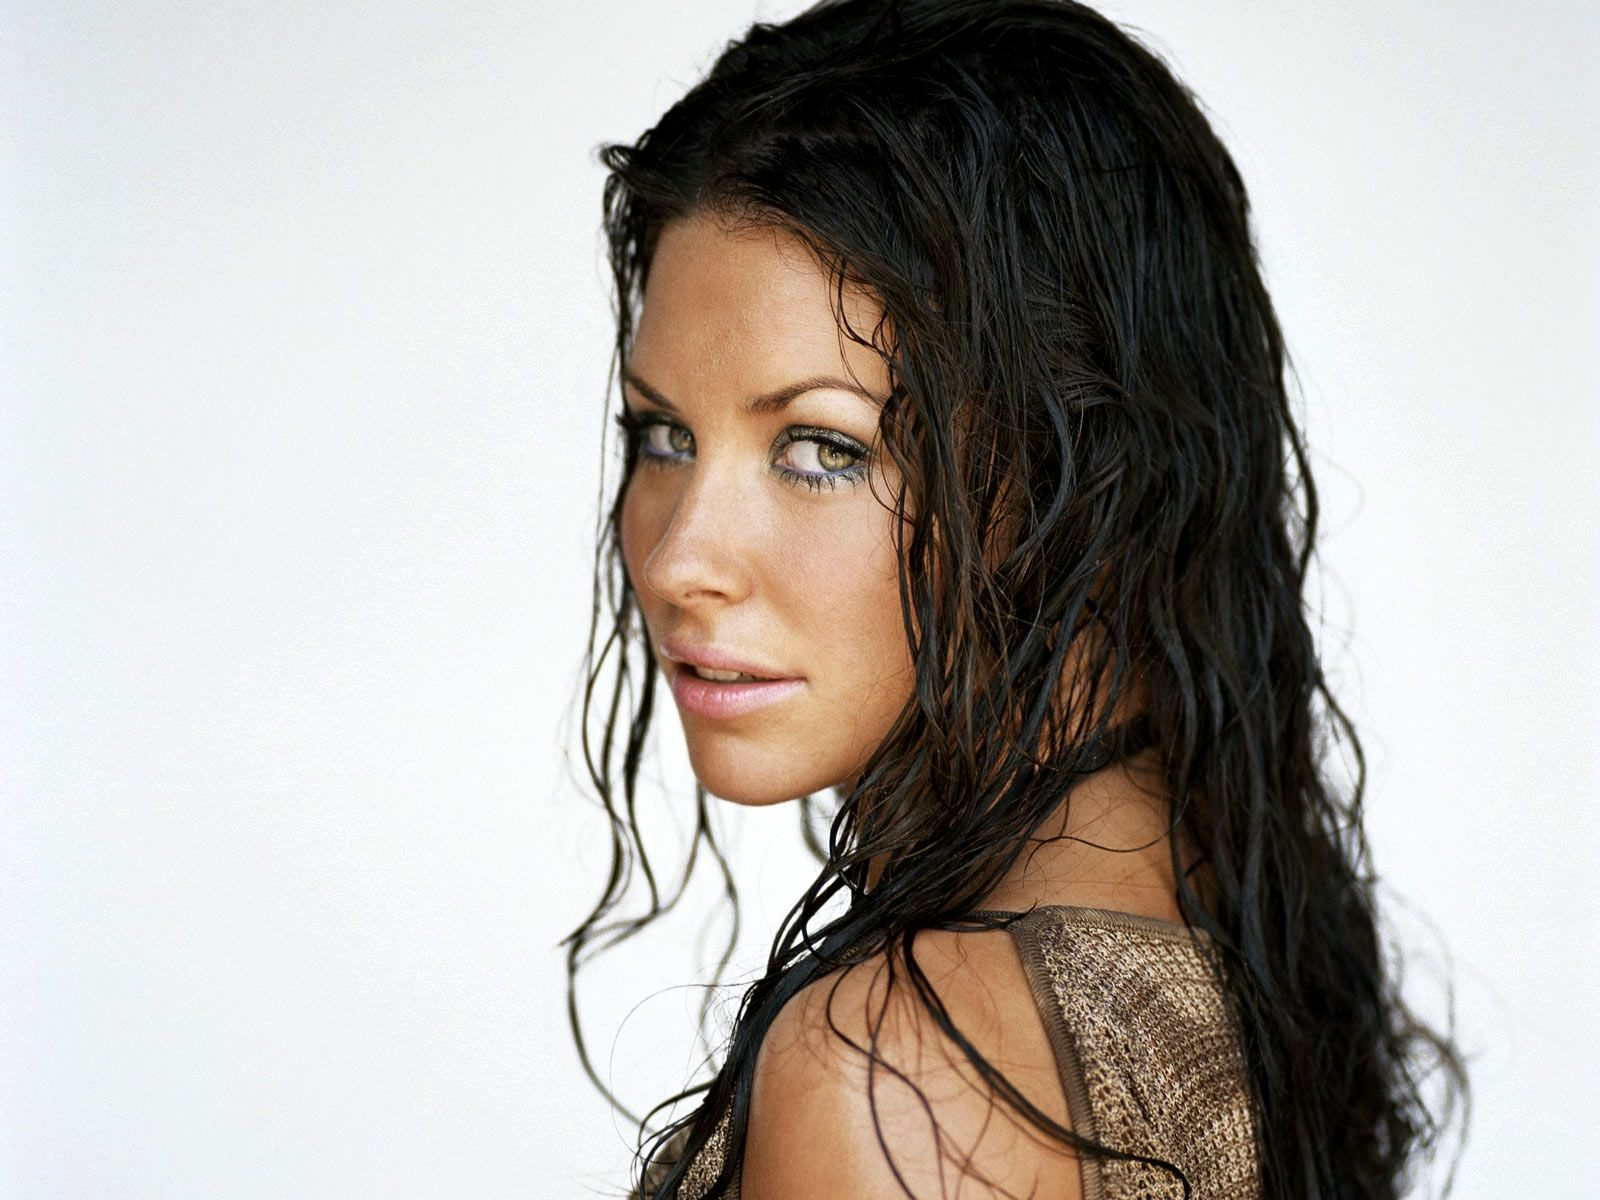 1600x1200 - Evangeline Lilly Wallpapers 19